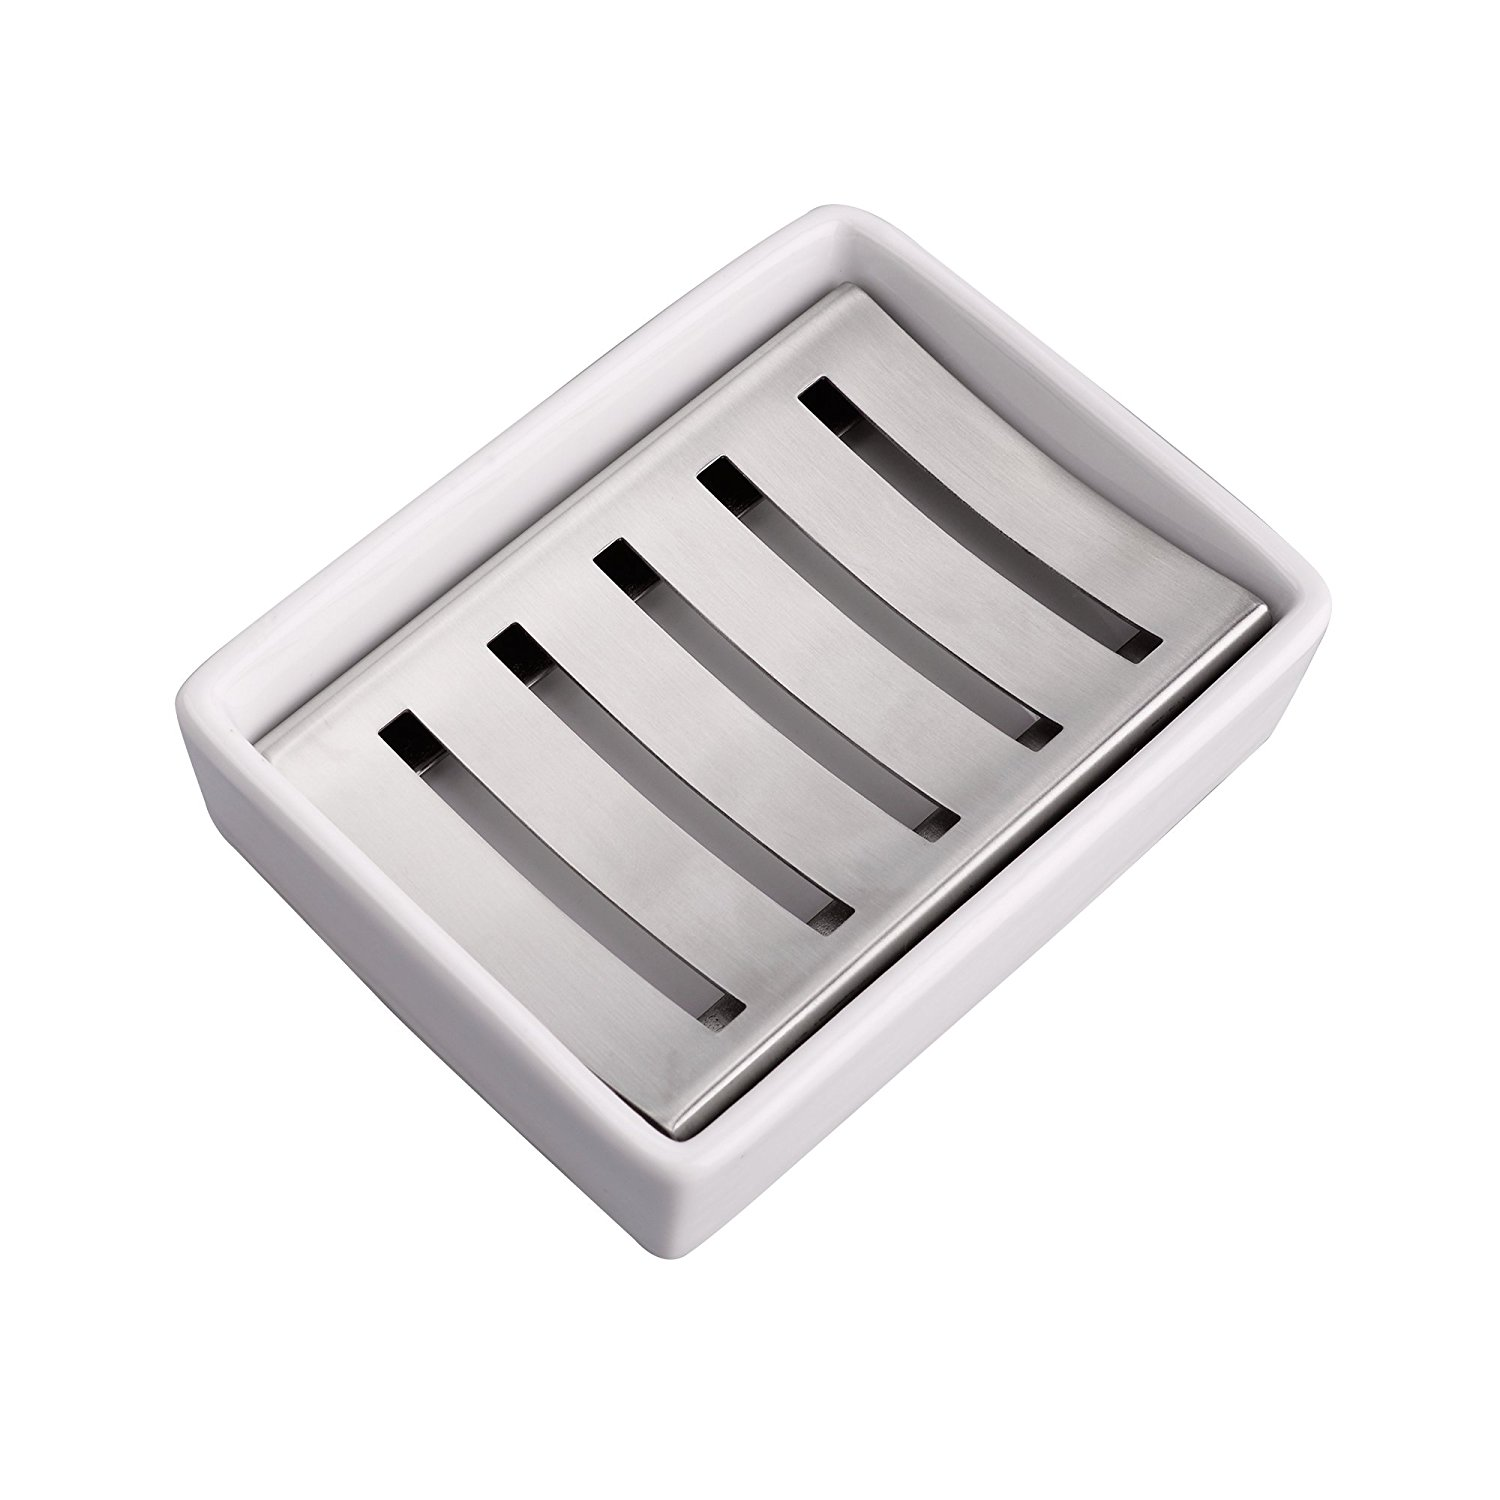 IMEEA Soap Dish Holder Ceramic Seat SUS304 Stainless Steel, Upgraded